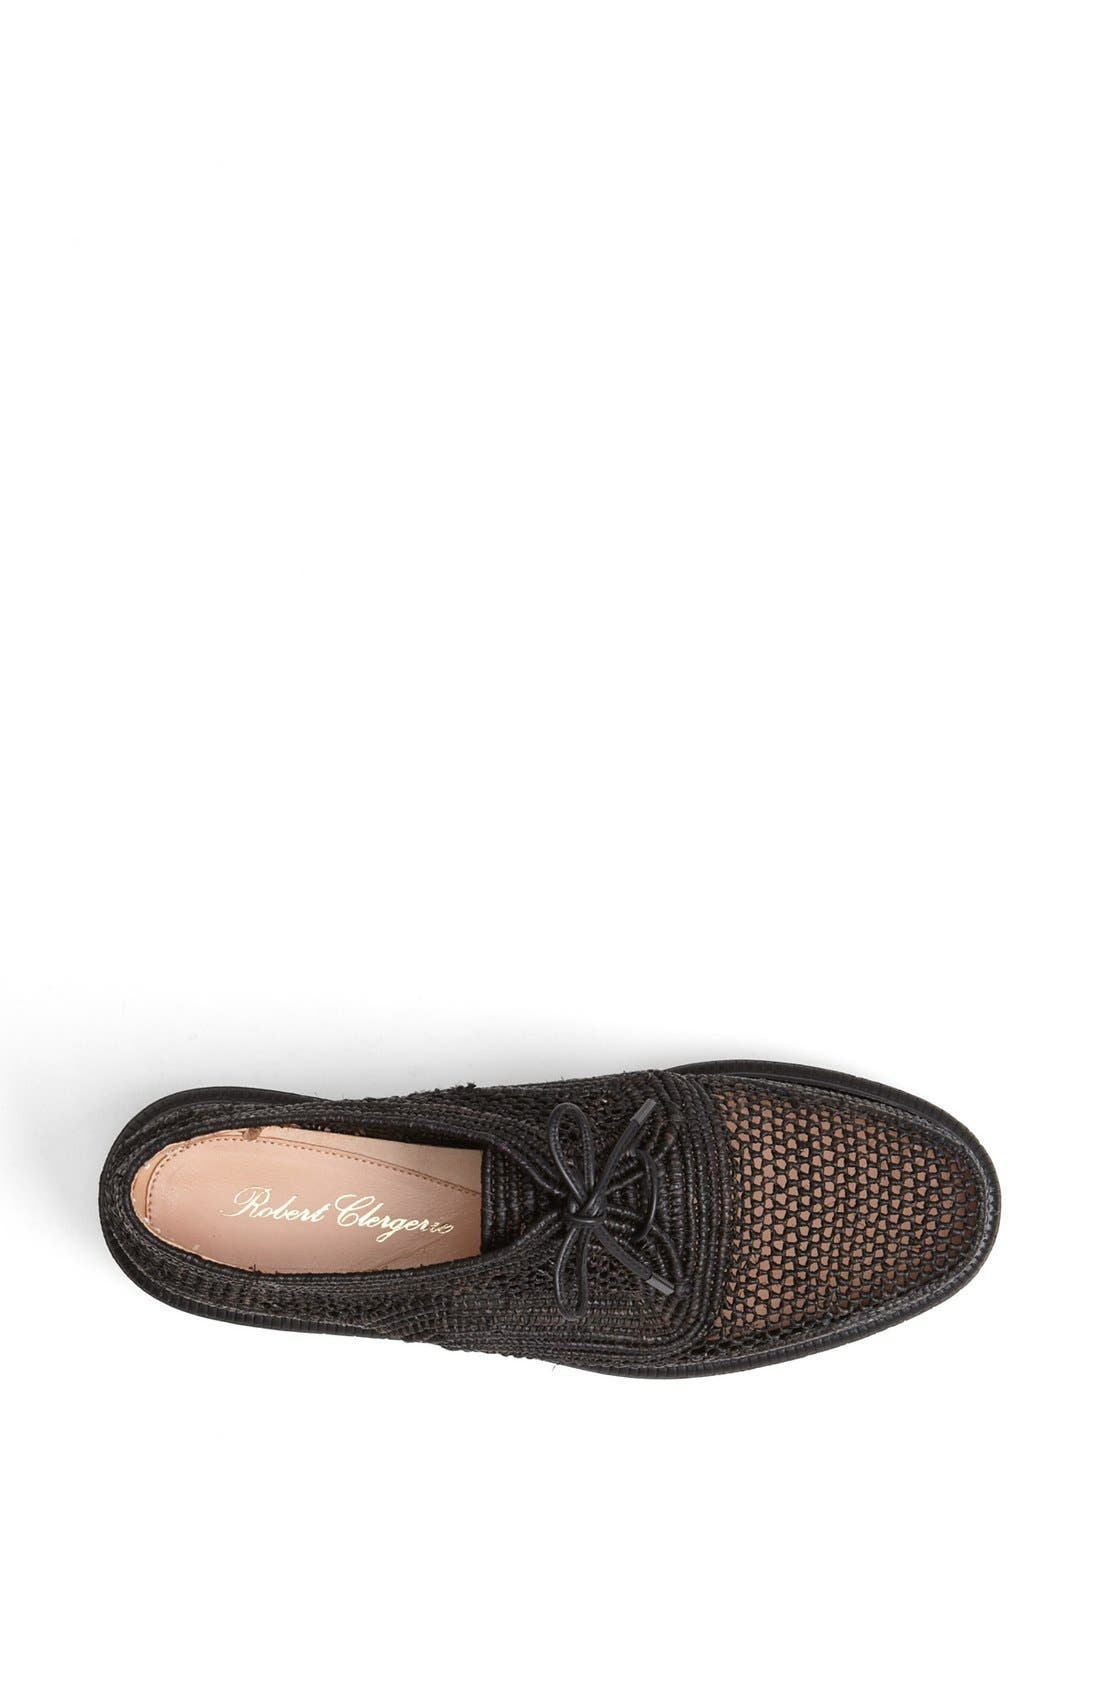 Alternate Image 3  - Robert Clergerie 'Pogo' Raffia Platform Oxford